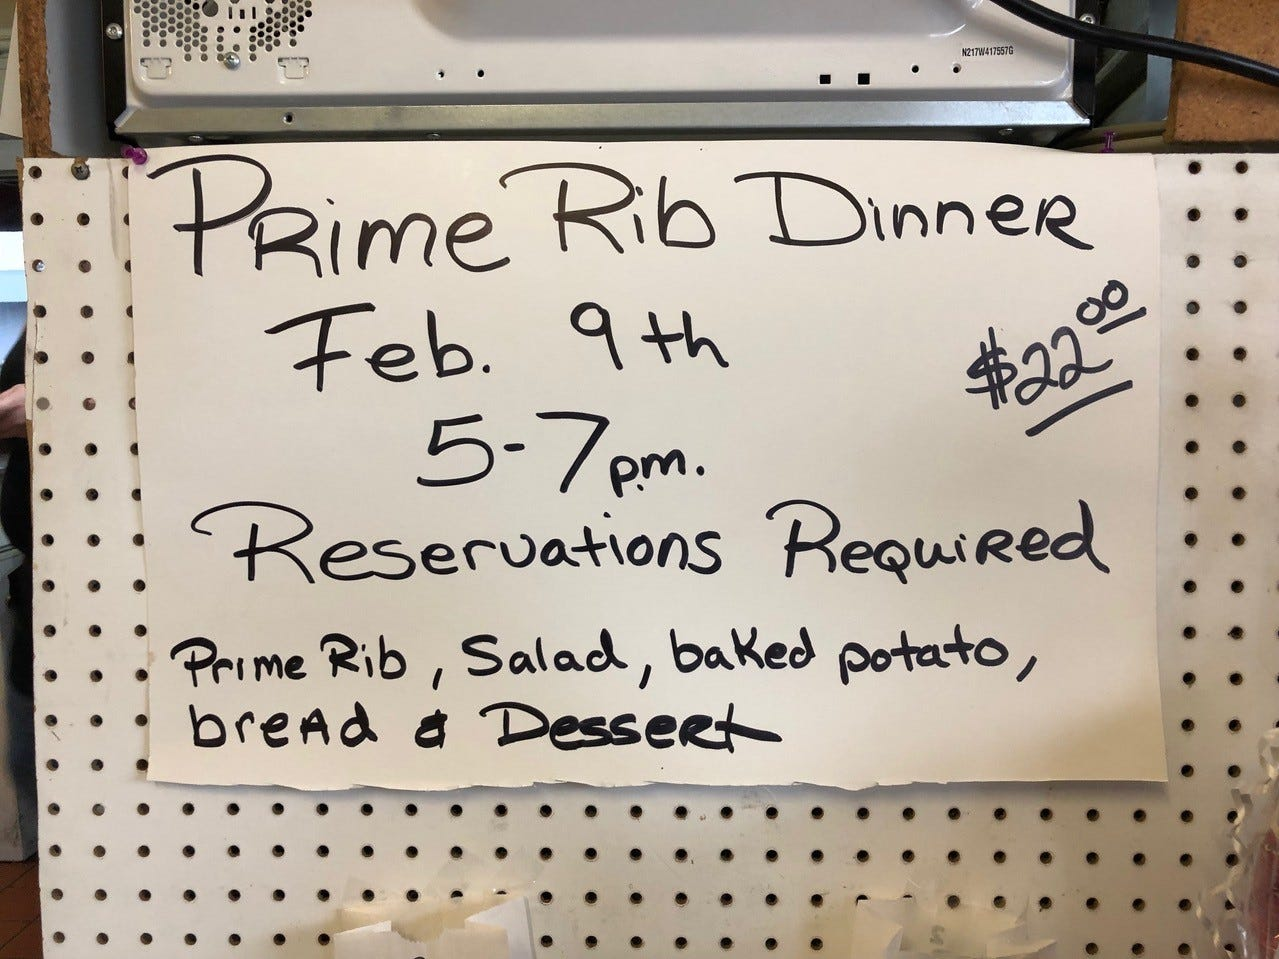 A sign promoting one of the special dinners at Rita's Kitchen in east Redding.